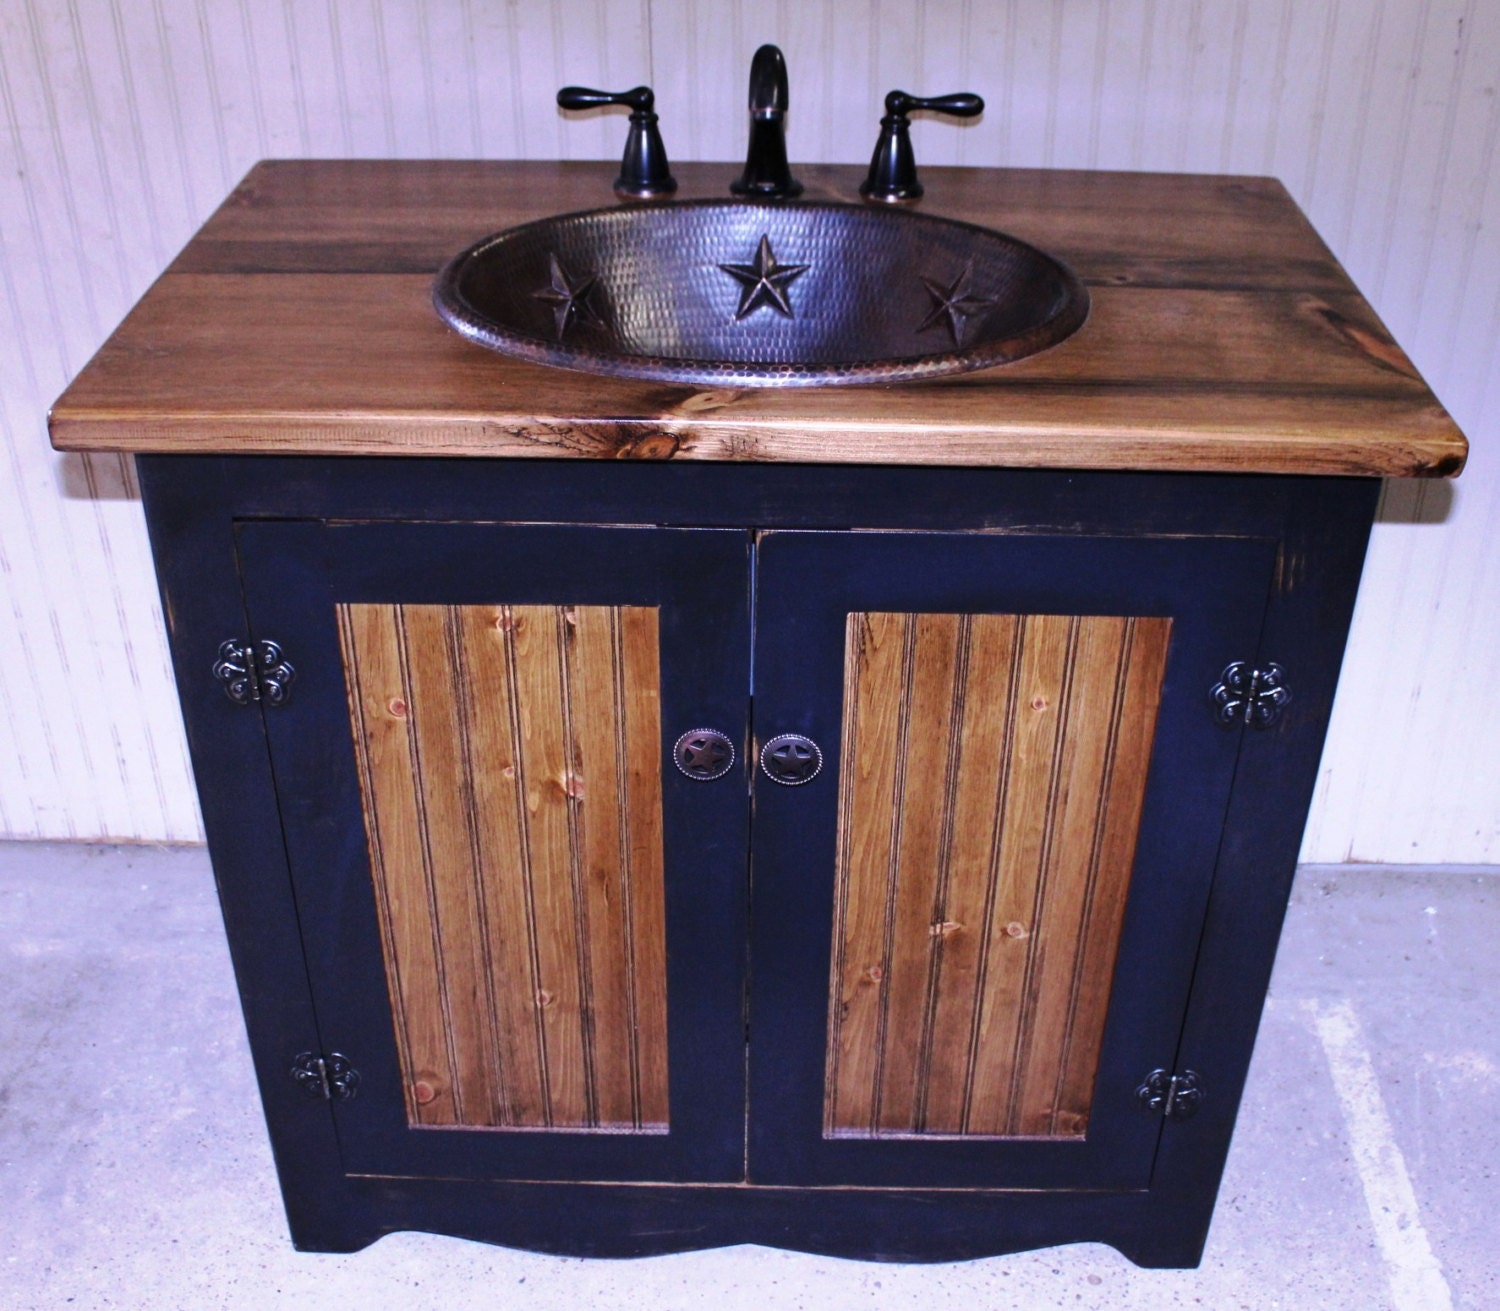 Bathroom Vanity Fh1296 36 Rustic Farmhouse Bathroom Vanity 36 Black Bathroom Vanity With Sink Copper Sink Bathroom Vanities